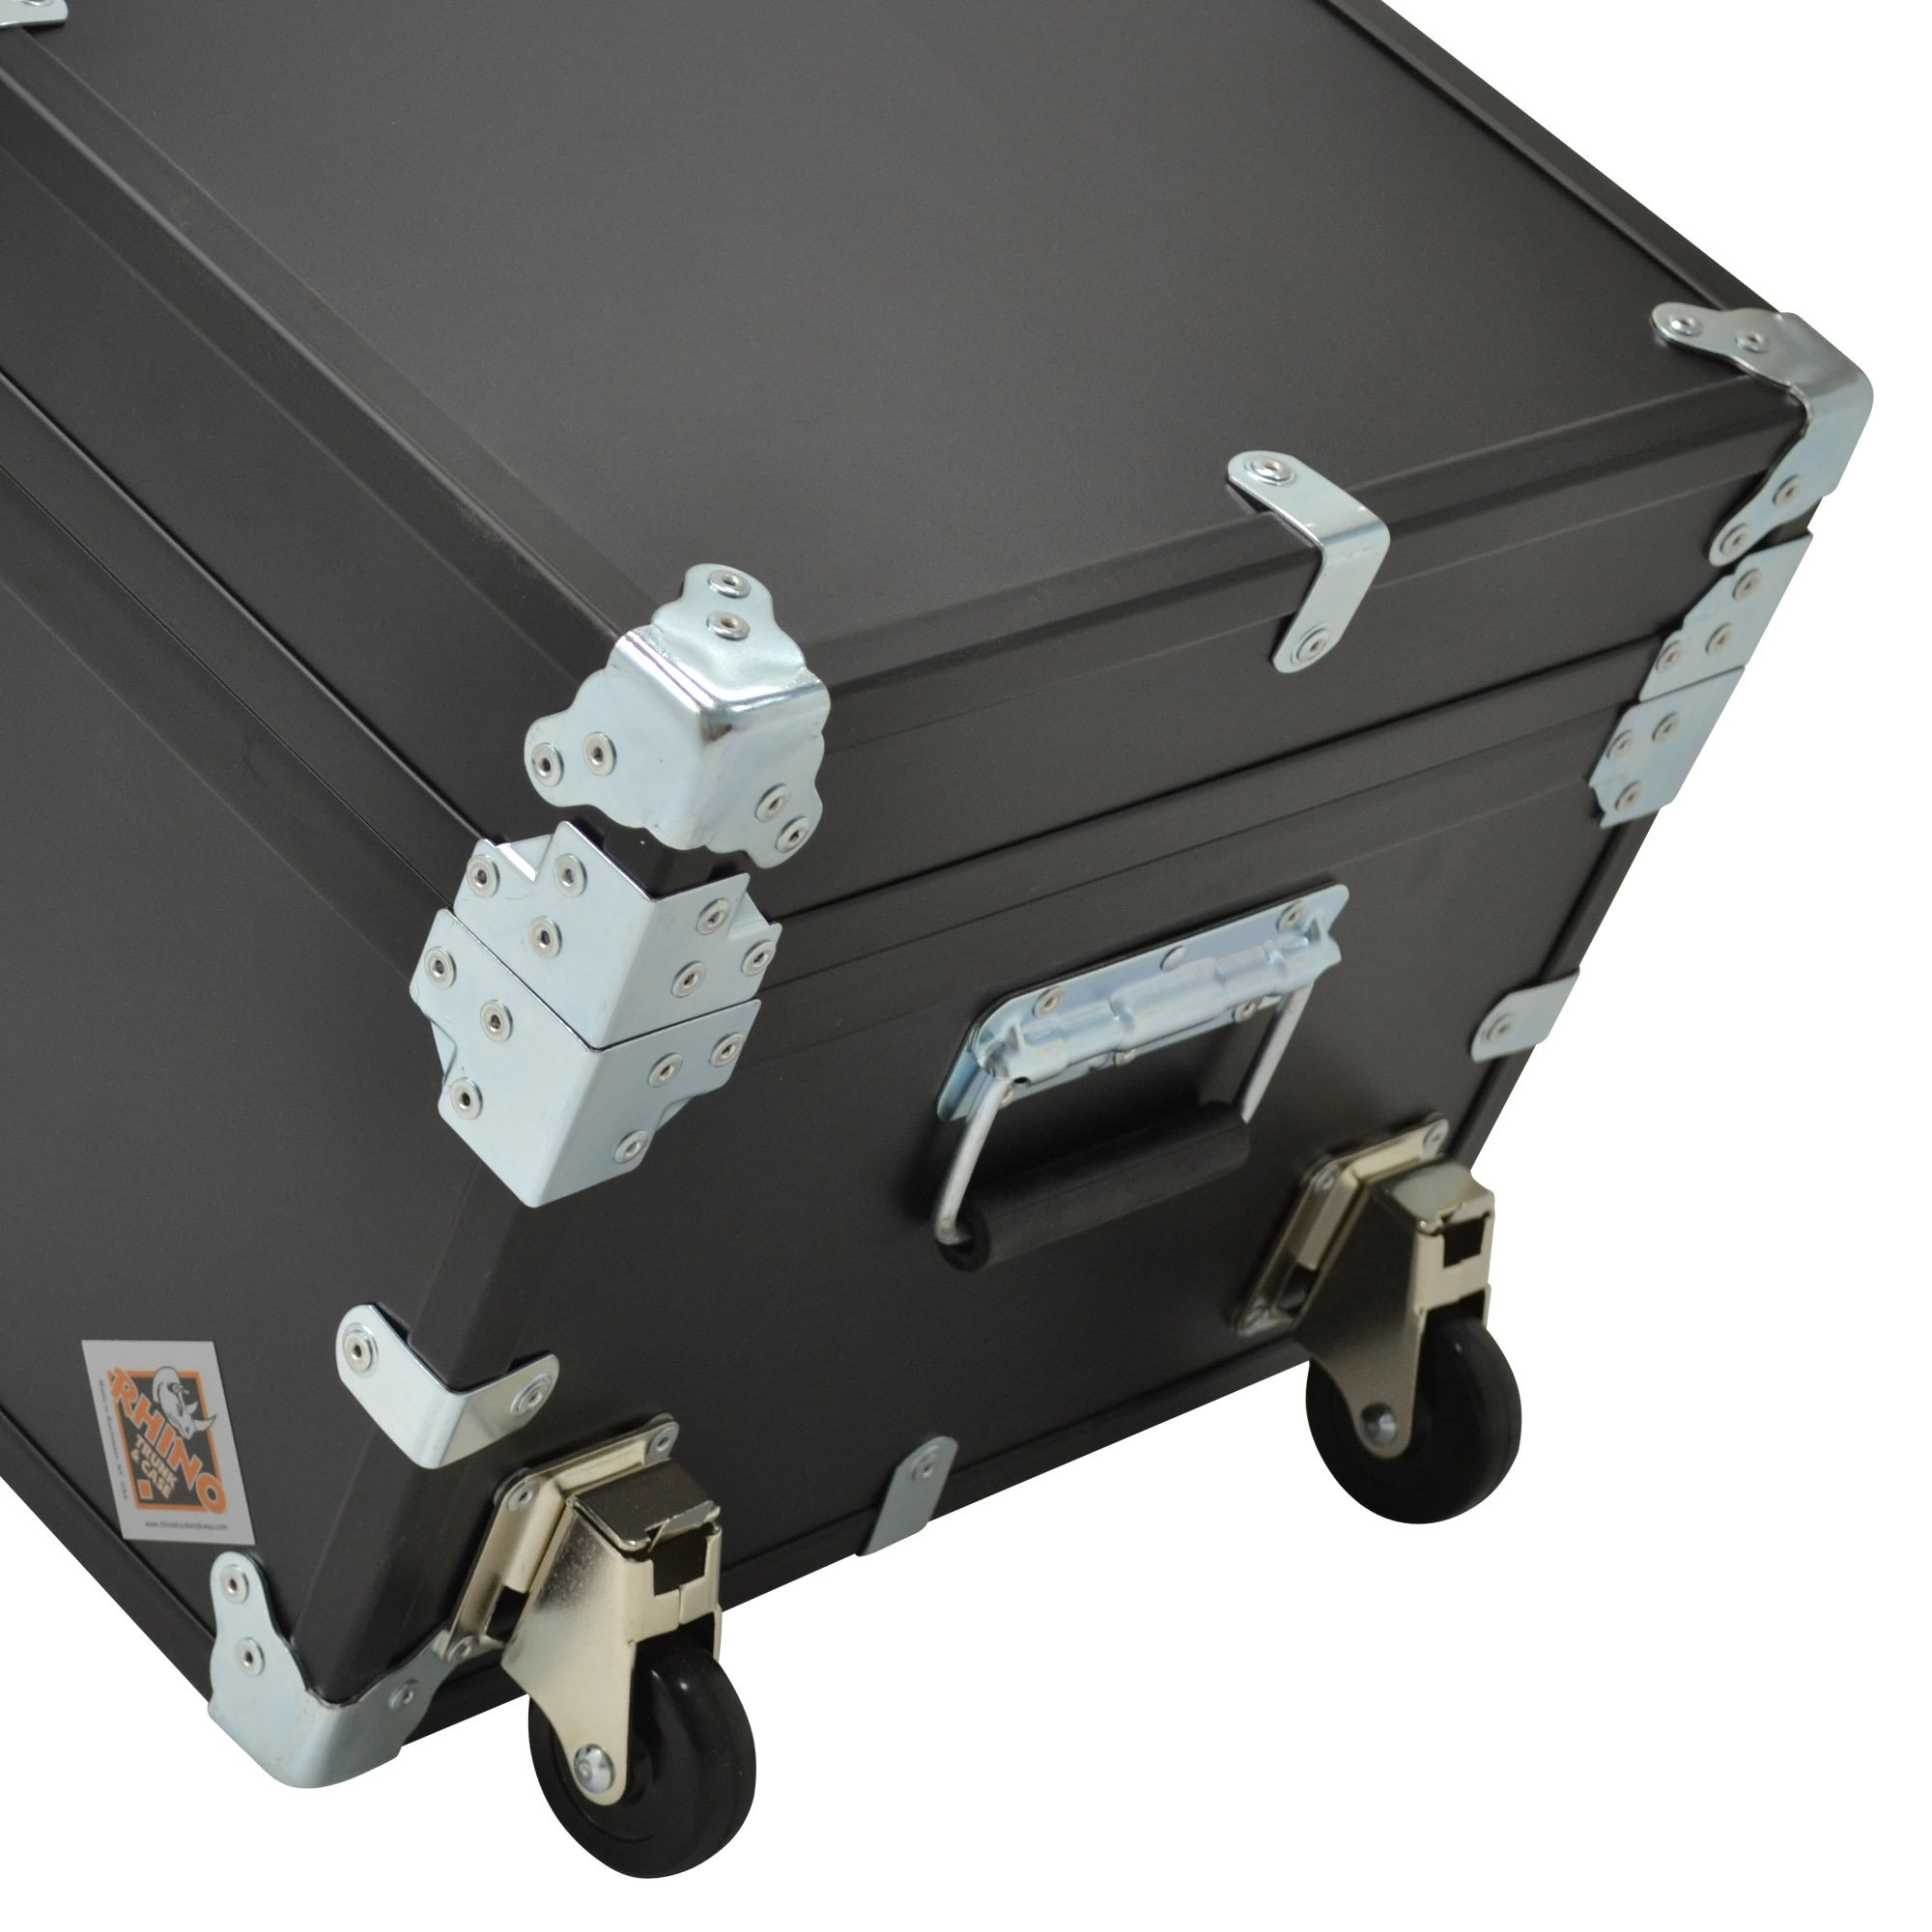 Rhino Indestructo Travel Trunk by Rhino Trunk and Case